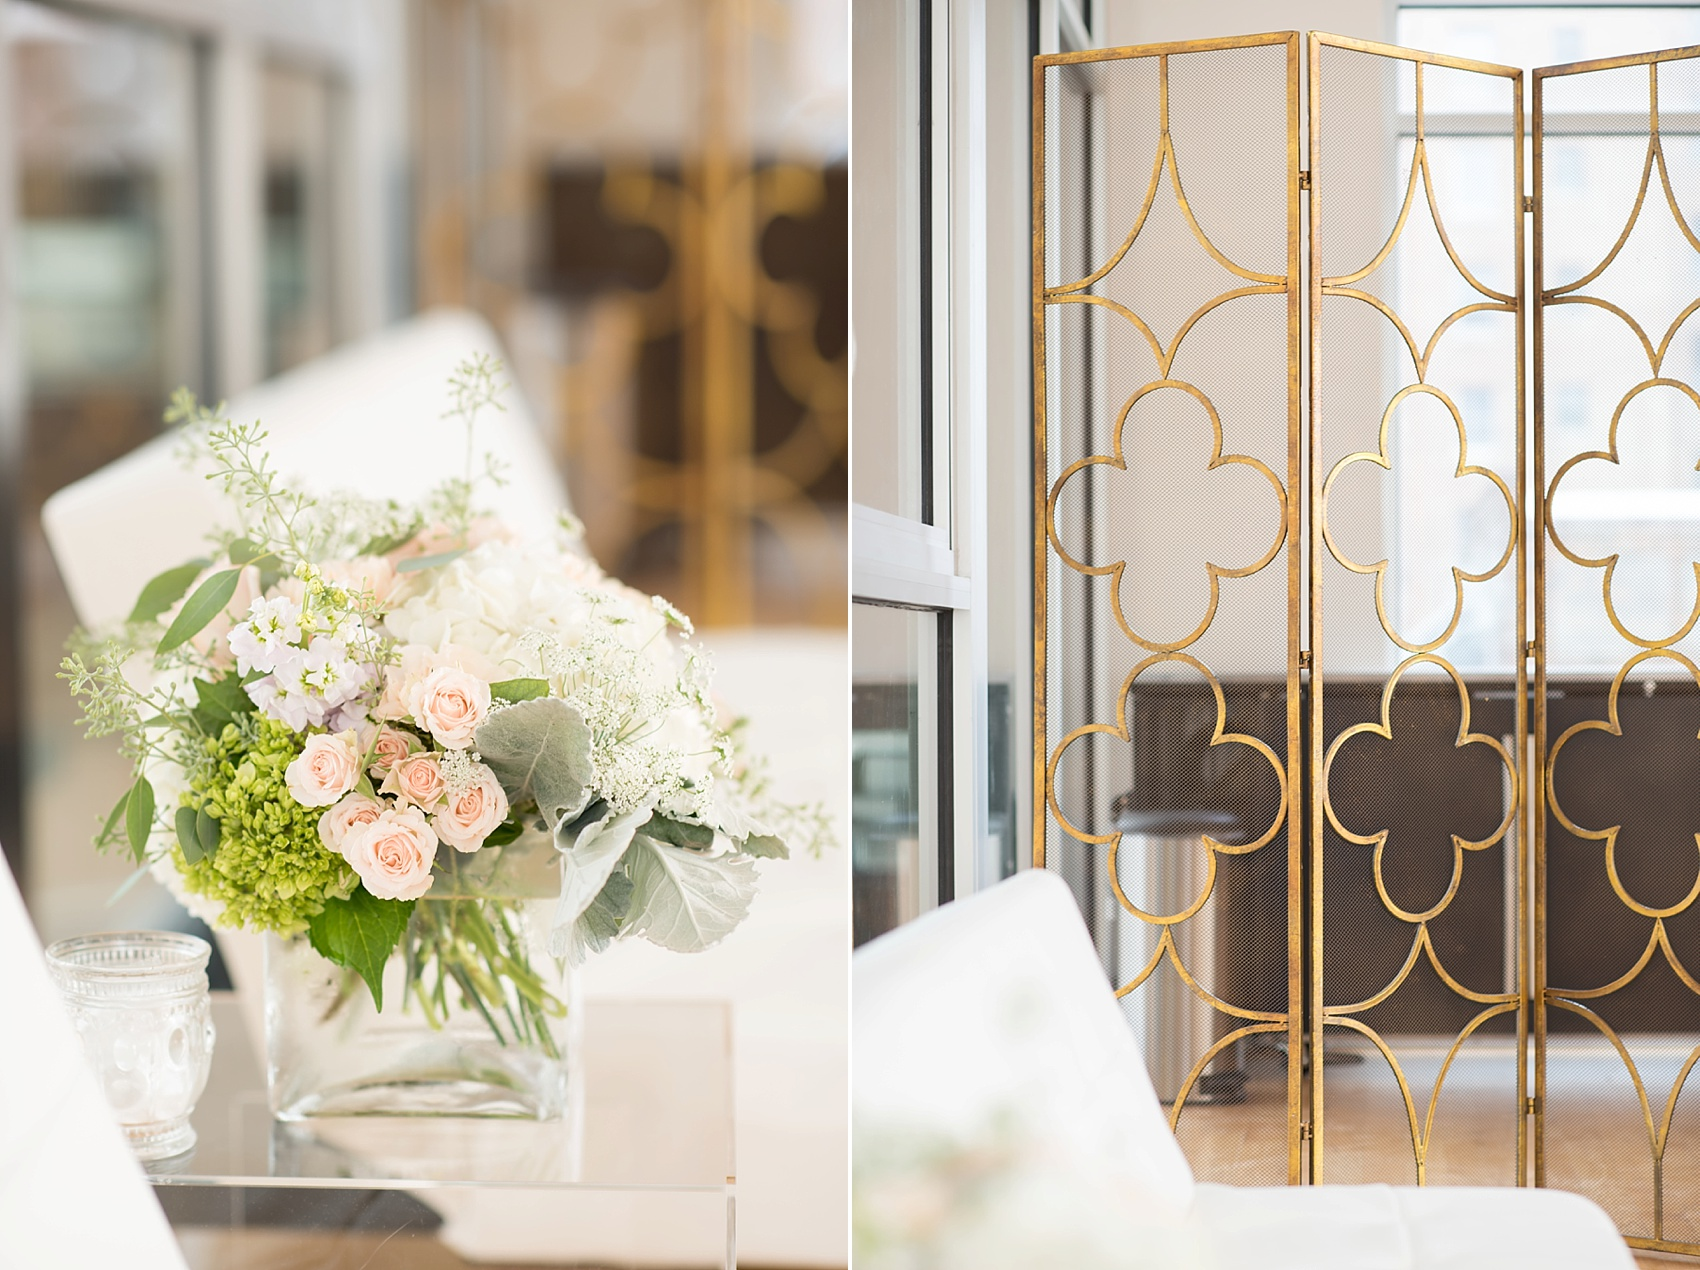 The Glass Box, downtown Raleigh wedding venue. Photos by Mikkel Paige Photography, flowers by SE Floral.